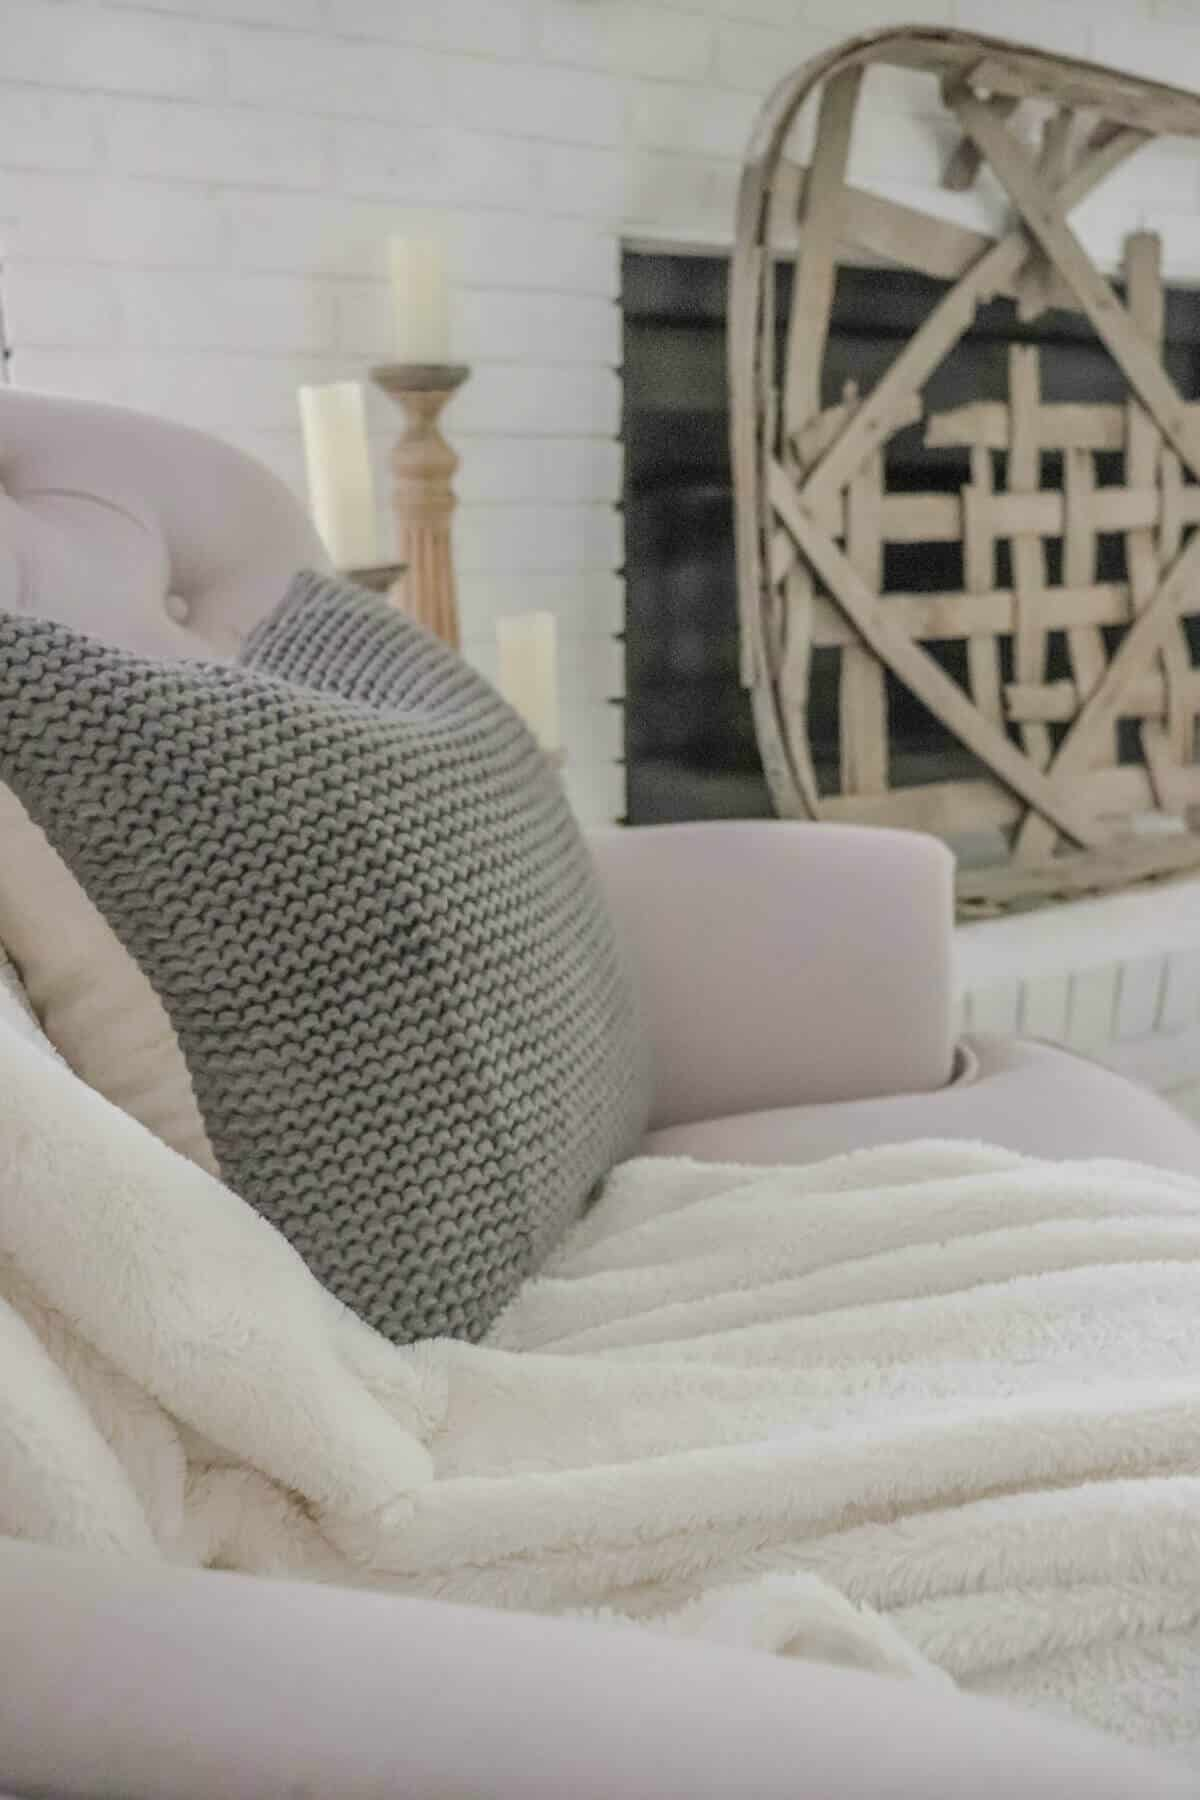 Gray Knit Pillow on armchair next to a white painted fireplace with a tobacco basket as a screen